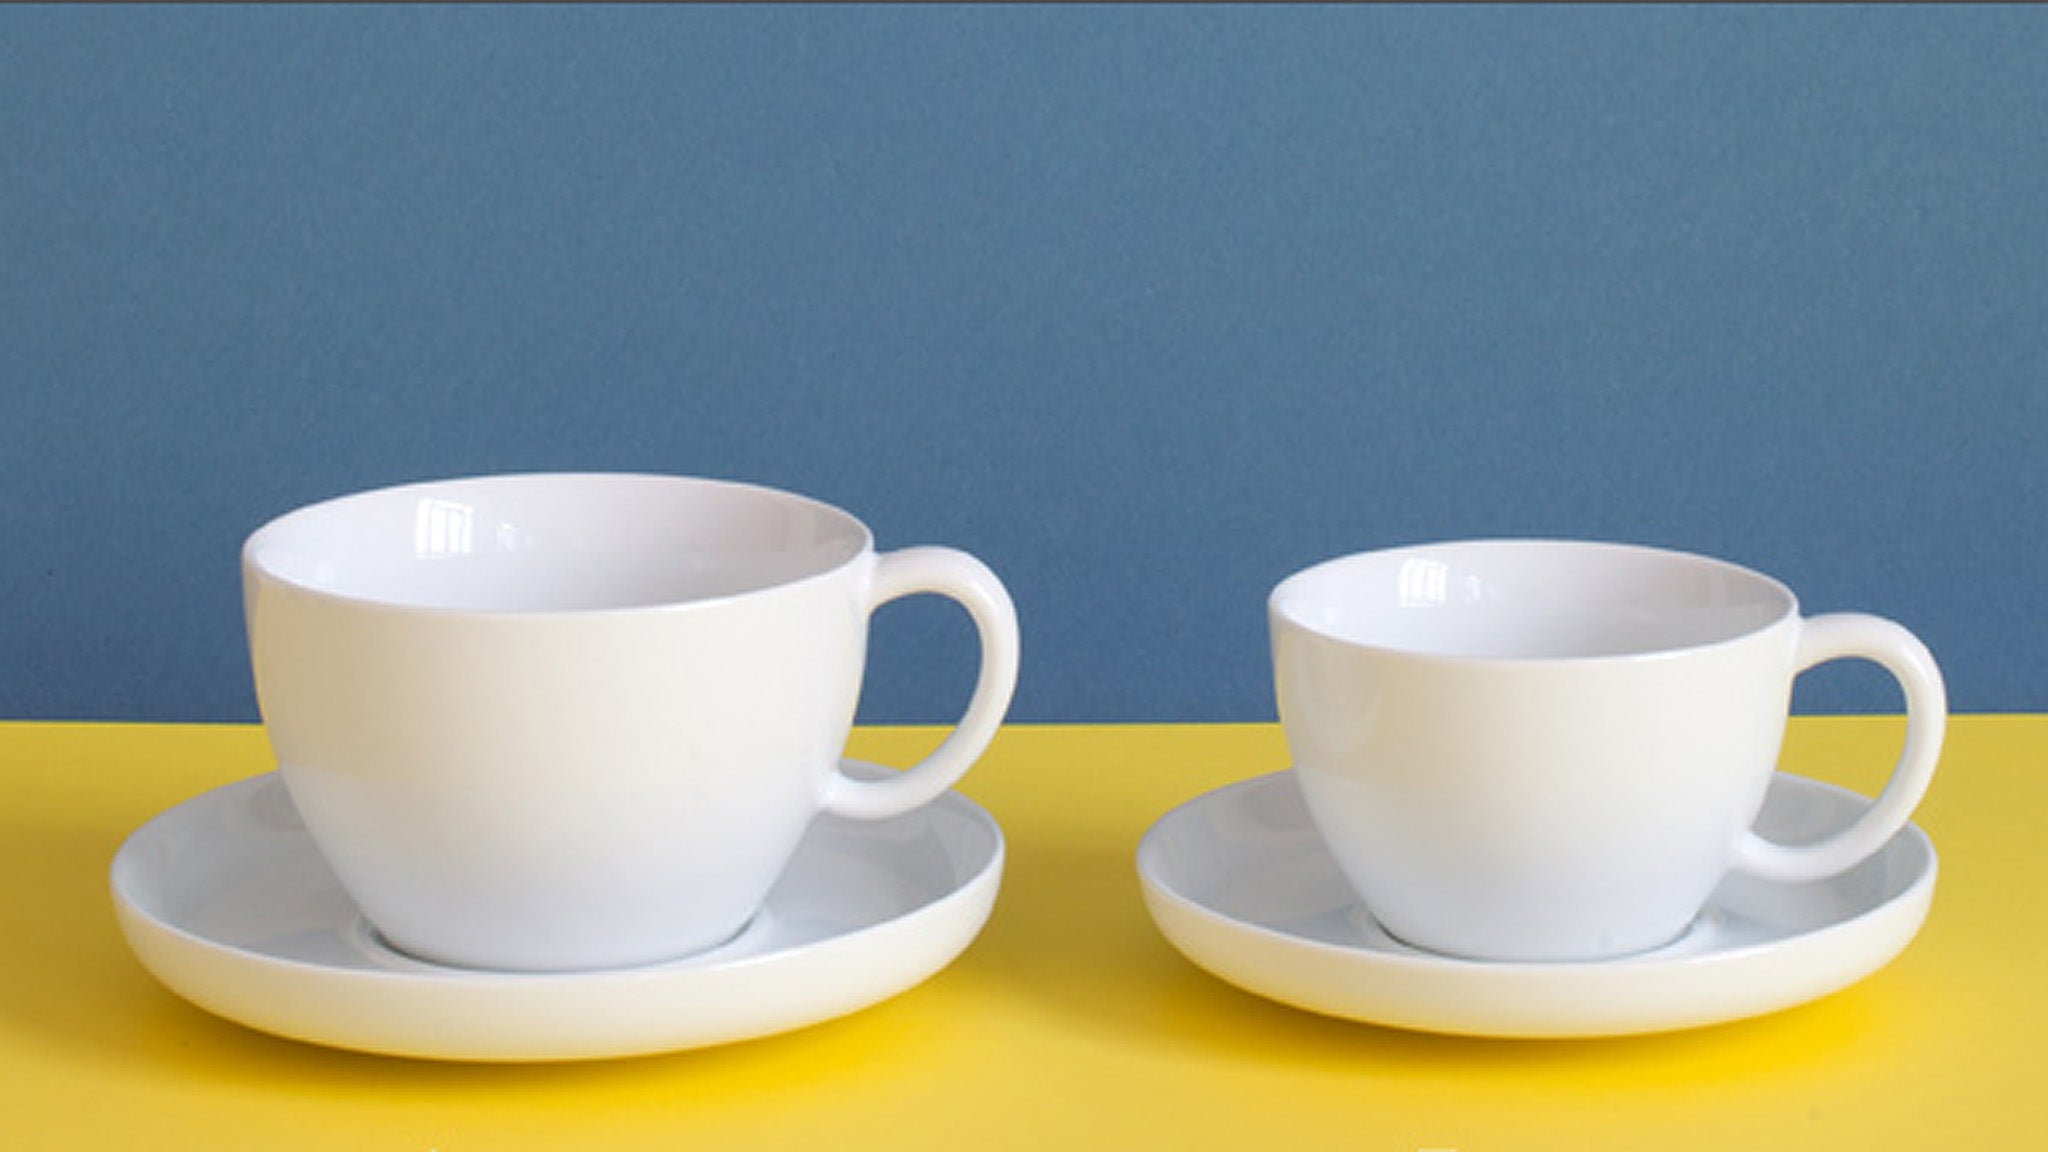 Sowden Penrose Latte Cup and Saucer Set. Art. S030. Penrose Teacup and Saucer Set. Art. S029.